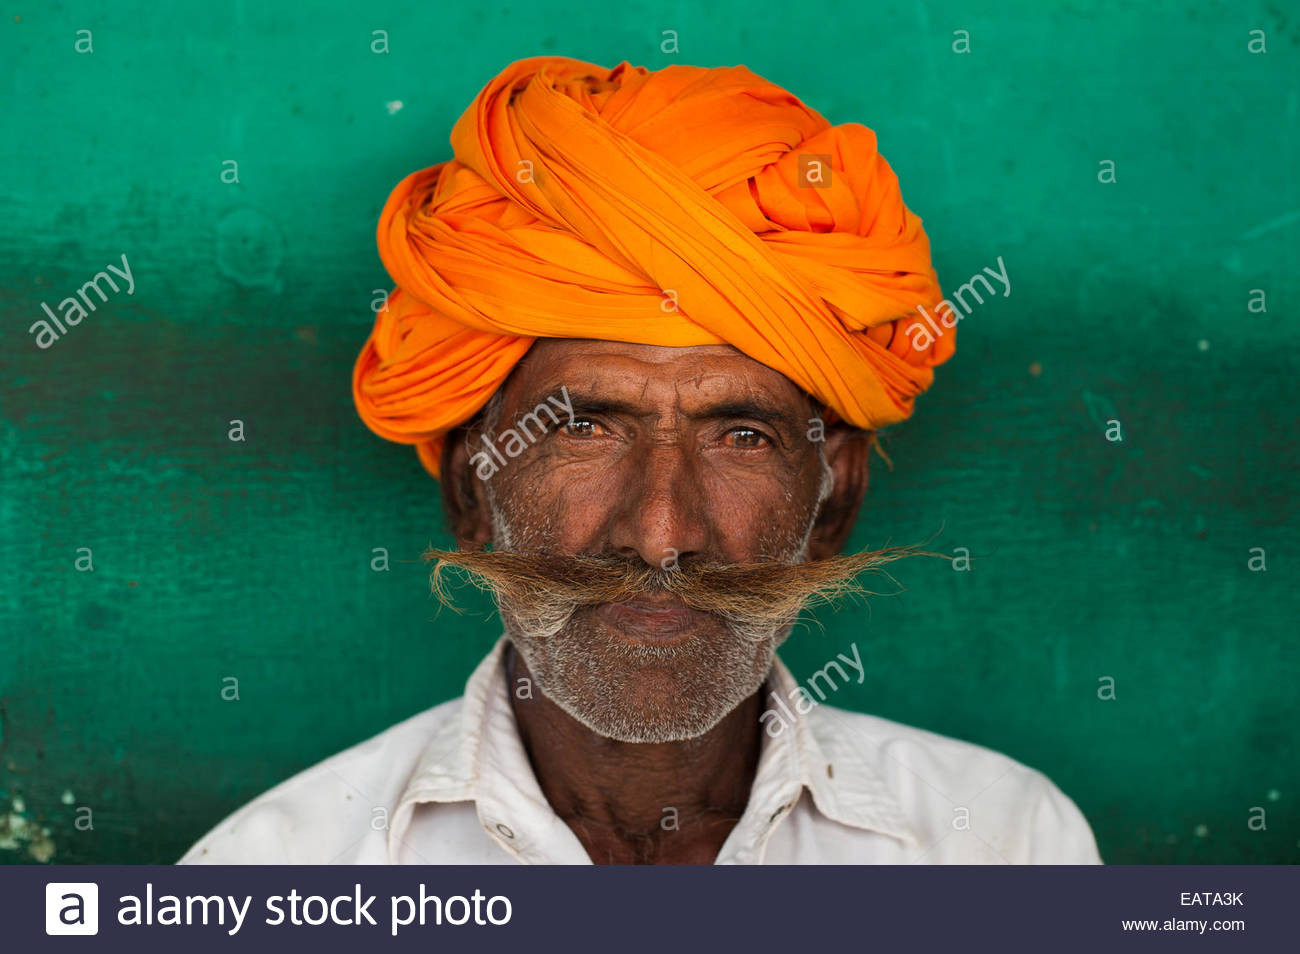 A Rajasthani man with a typically large moustache and colorful turban. - Stock Image